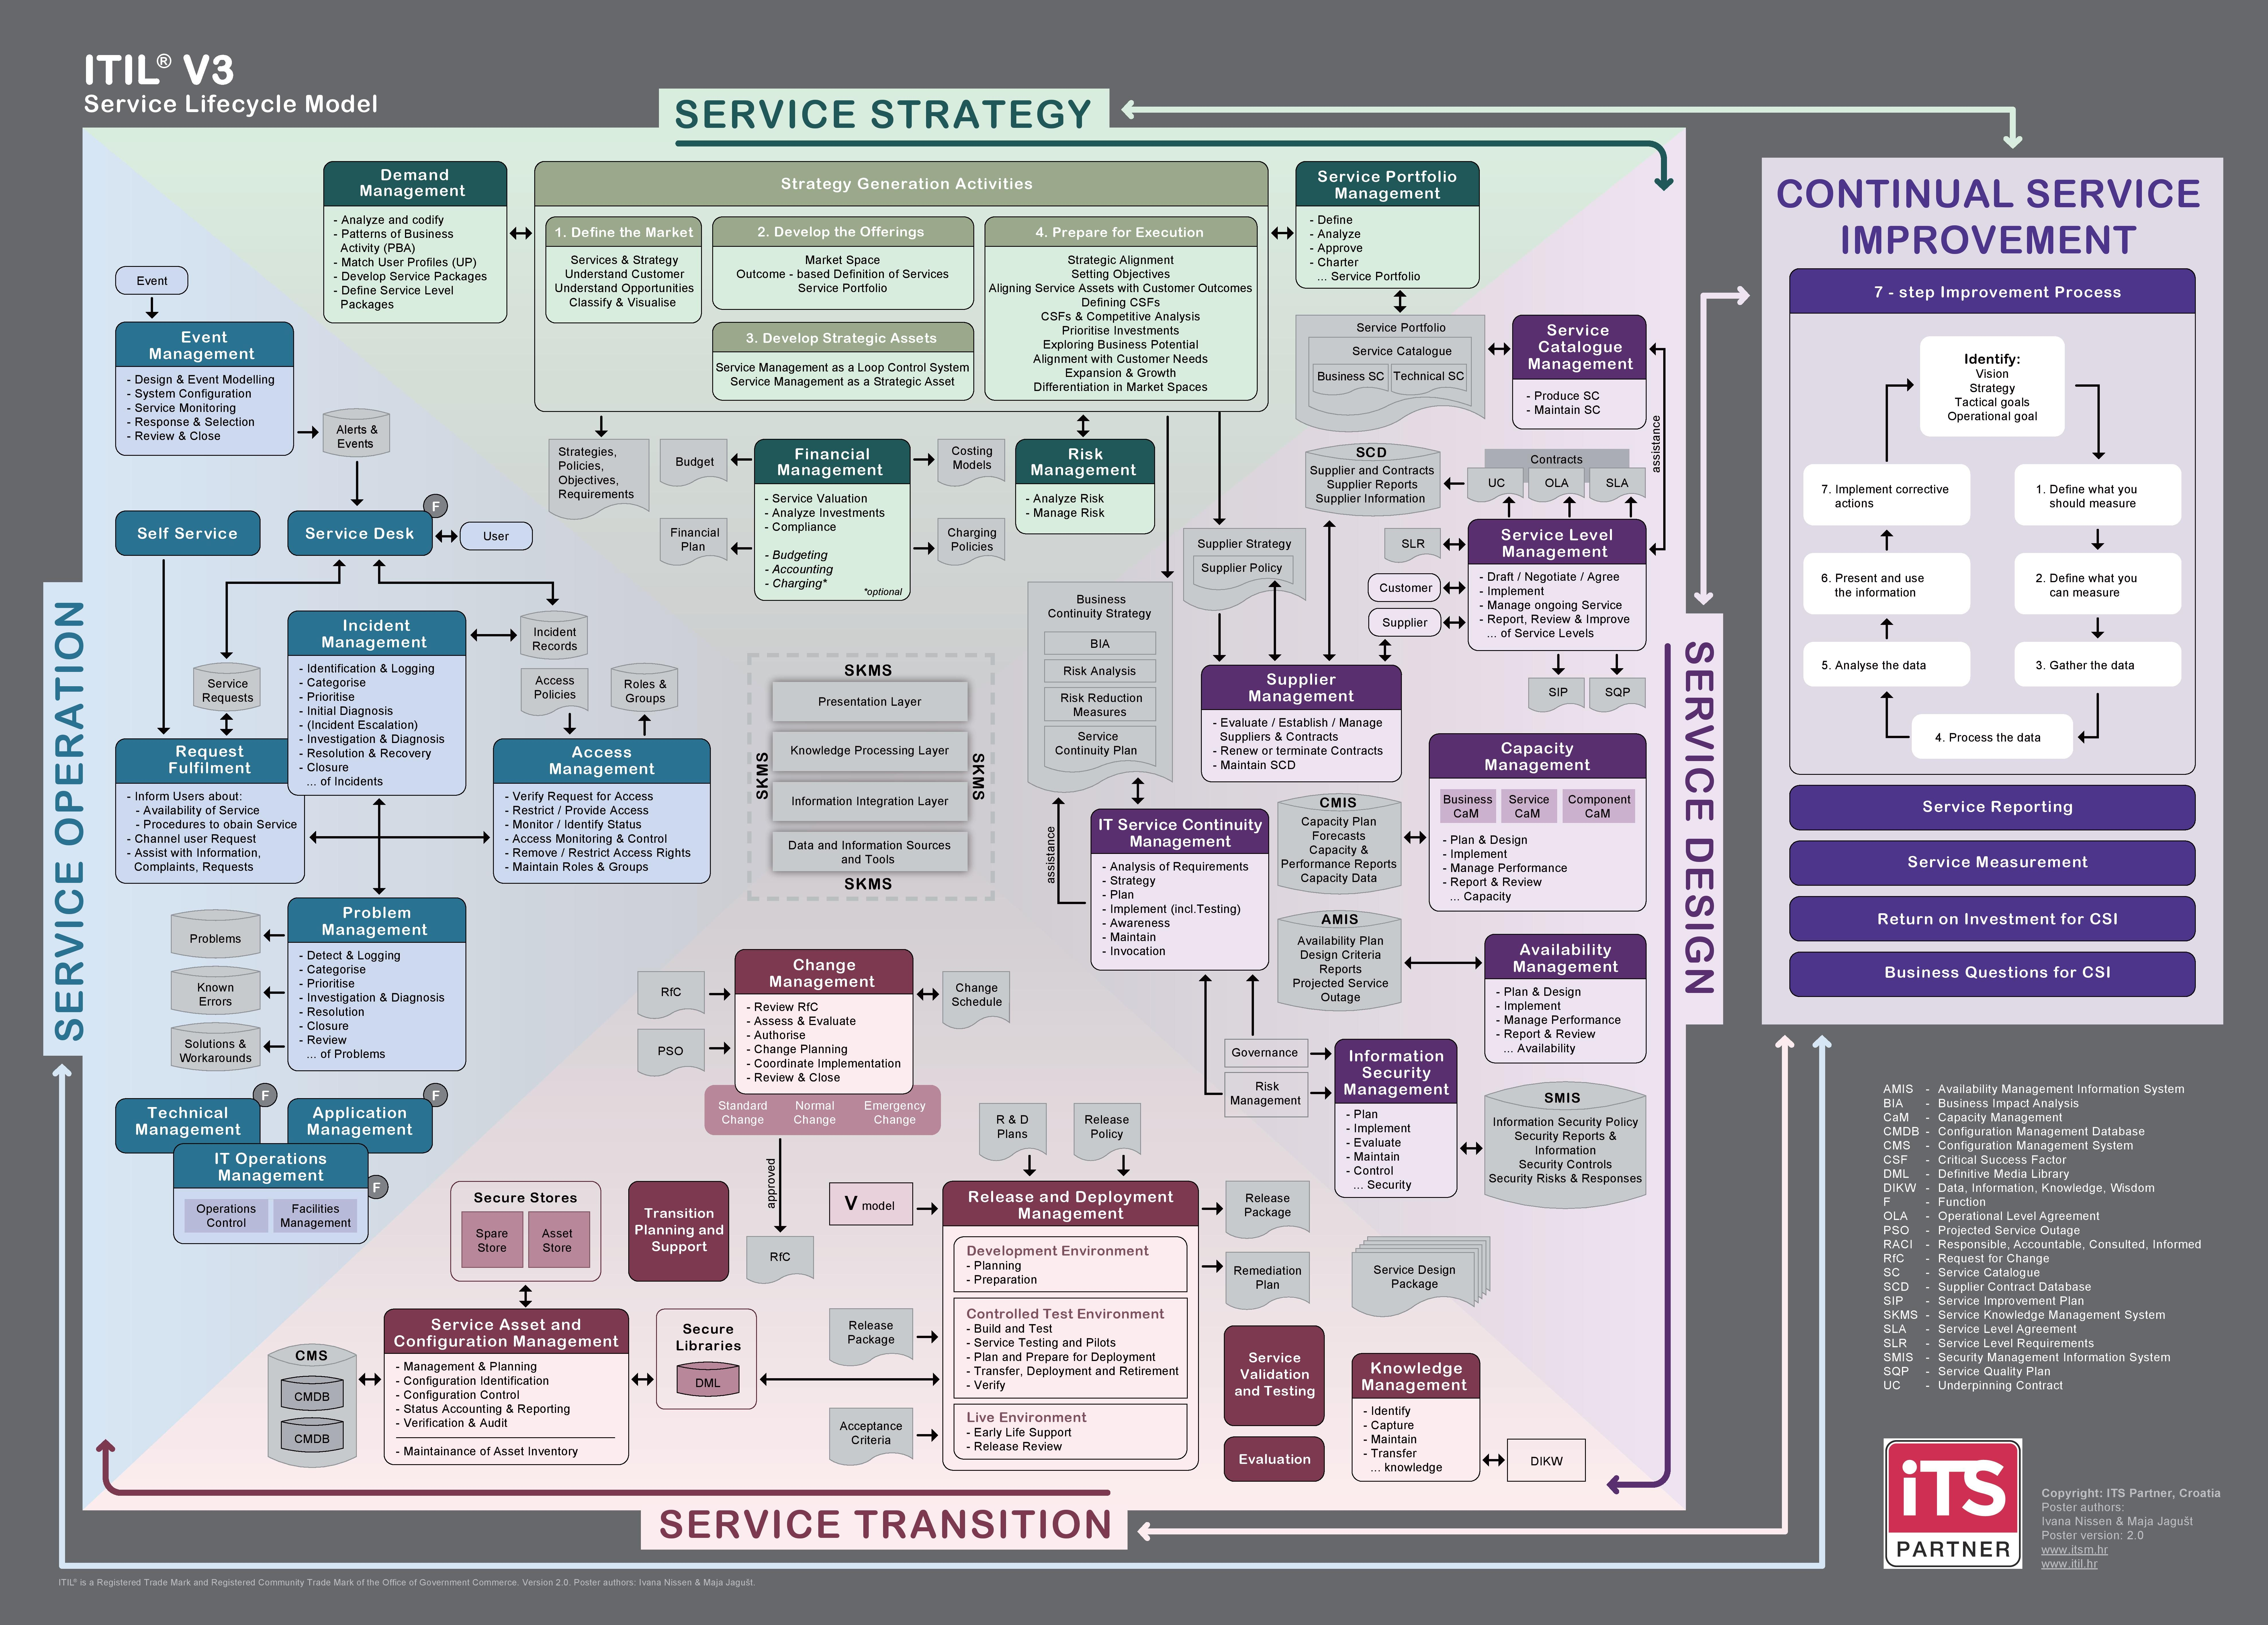 Itilv3 Service Lifecycle Model Its Partner Itil Pinterest